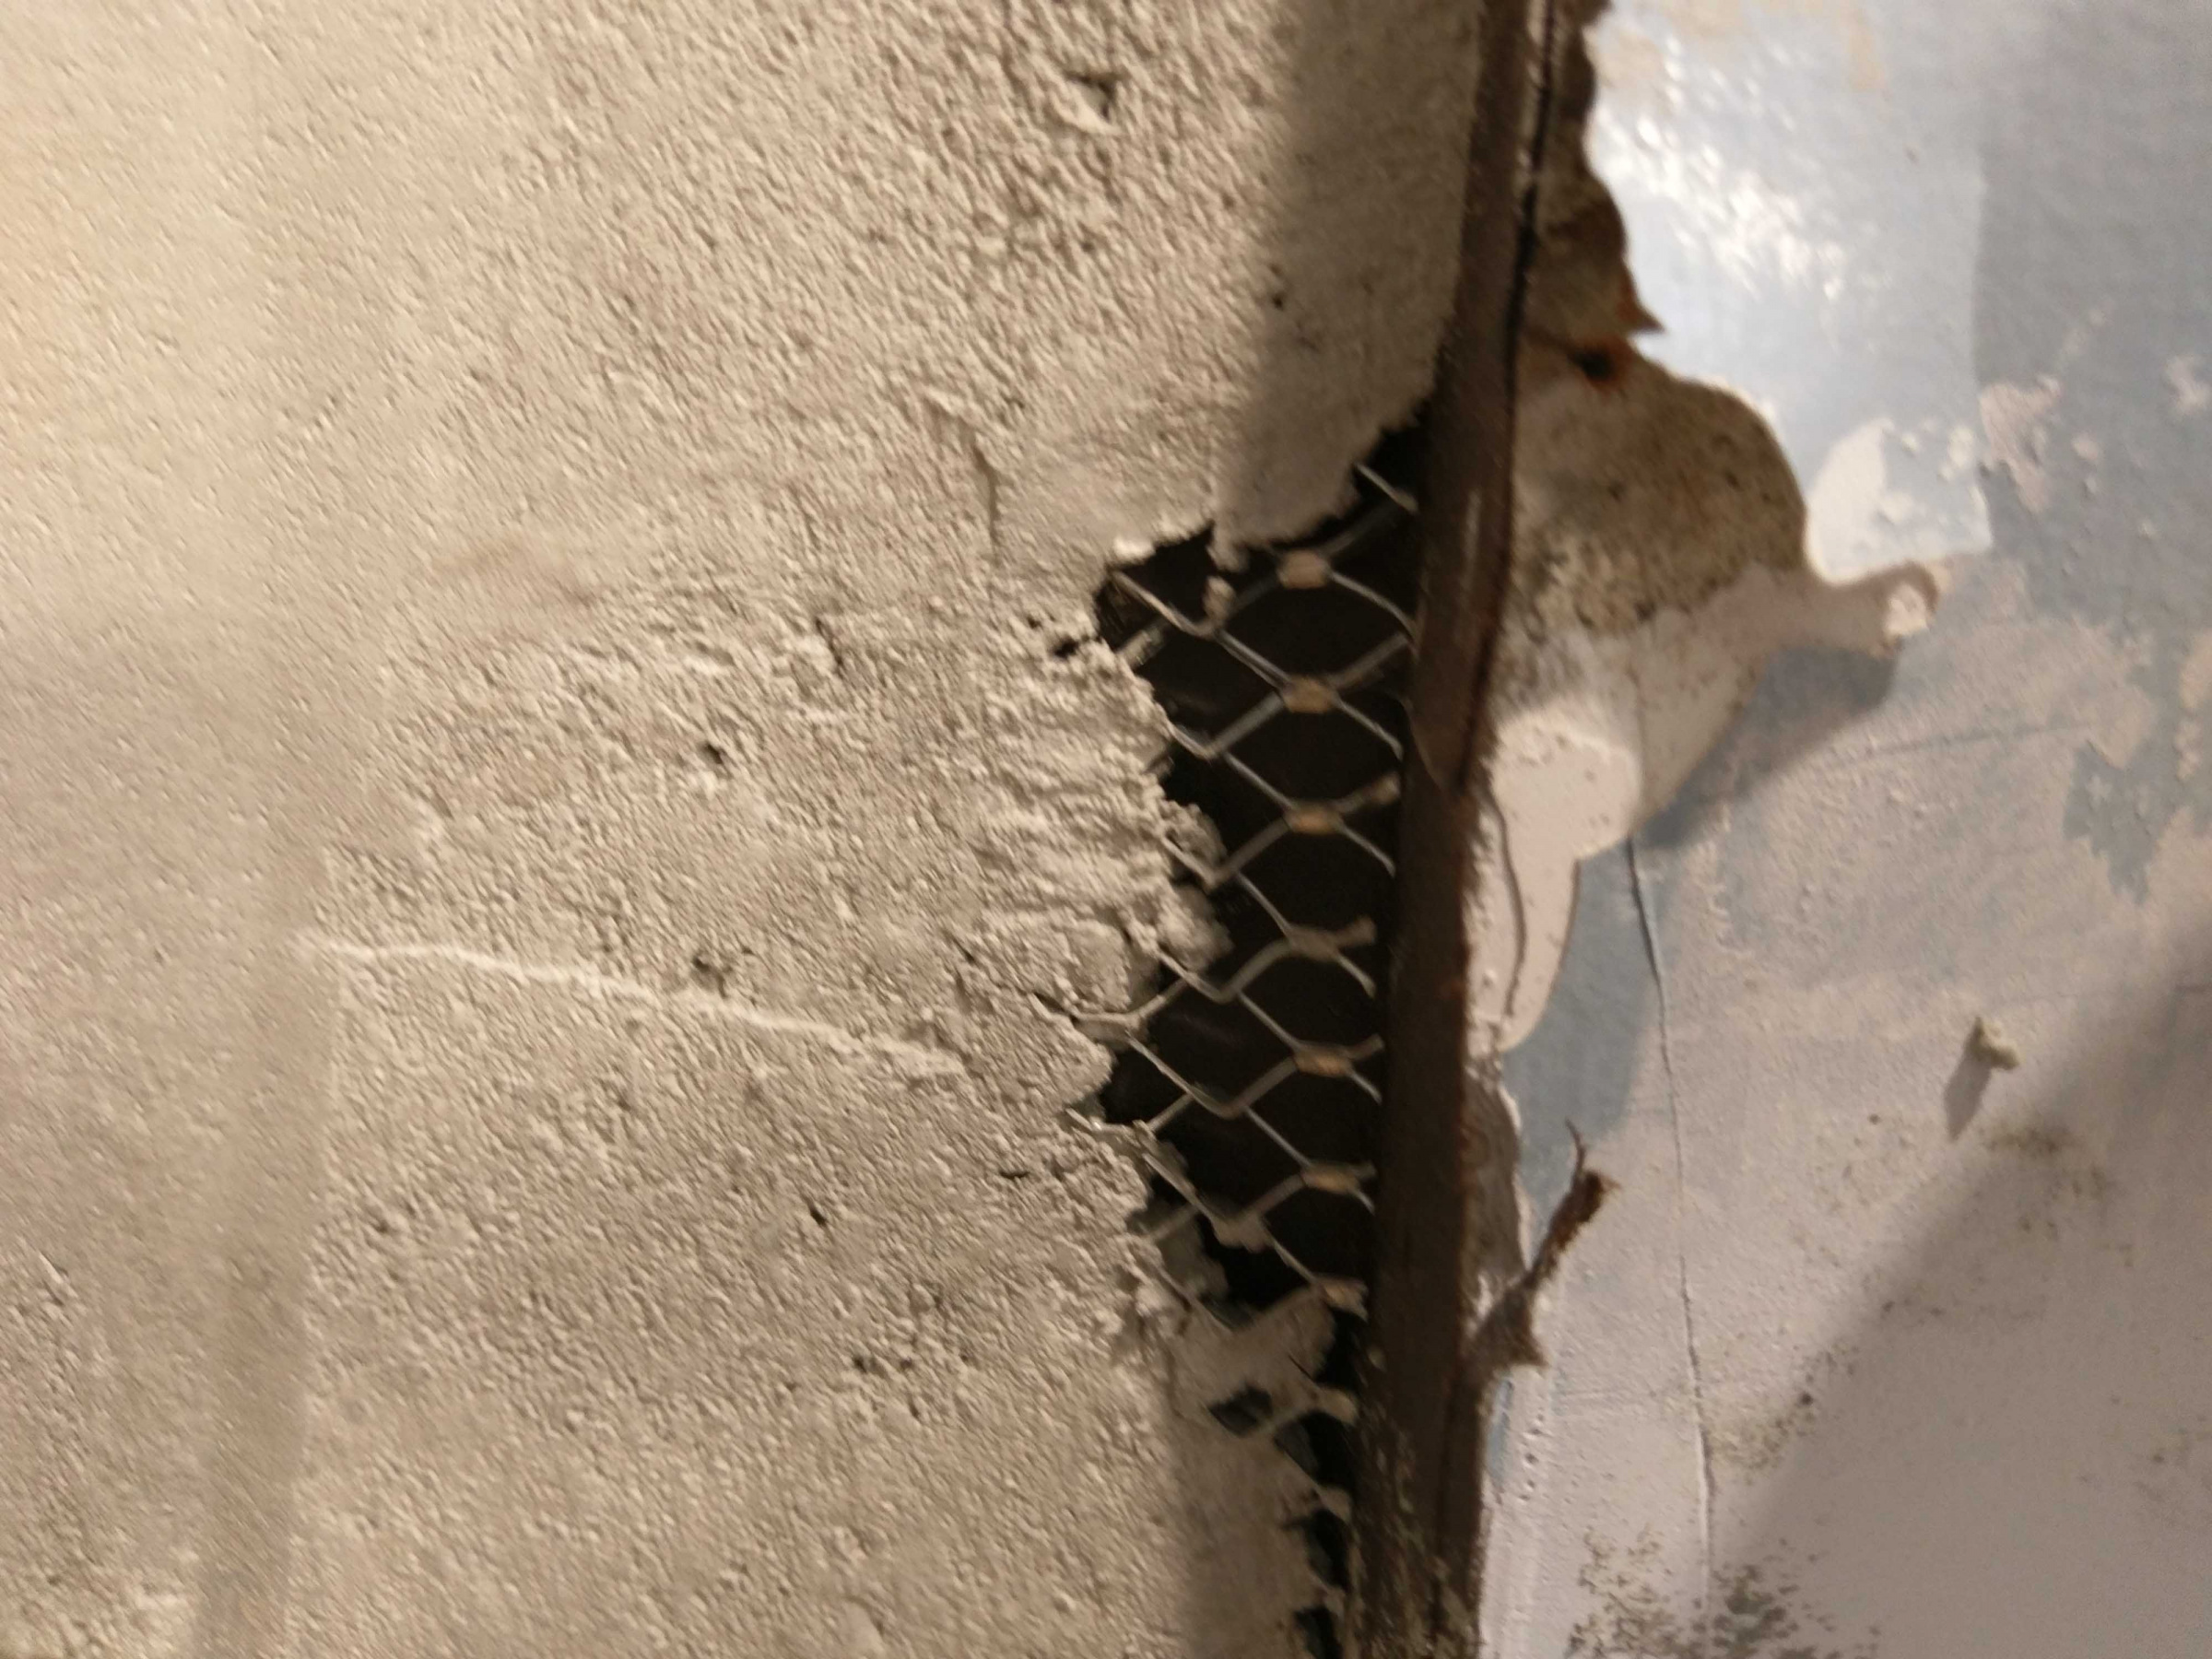 Floating Tile - Should We Be Worried? - Torn Paper and Mud Gaps-06-holes.jpg